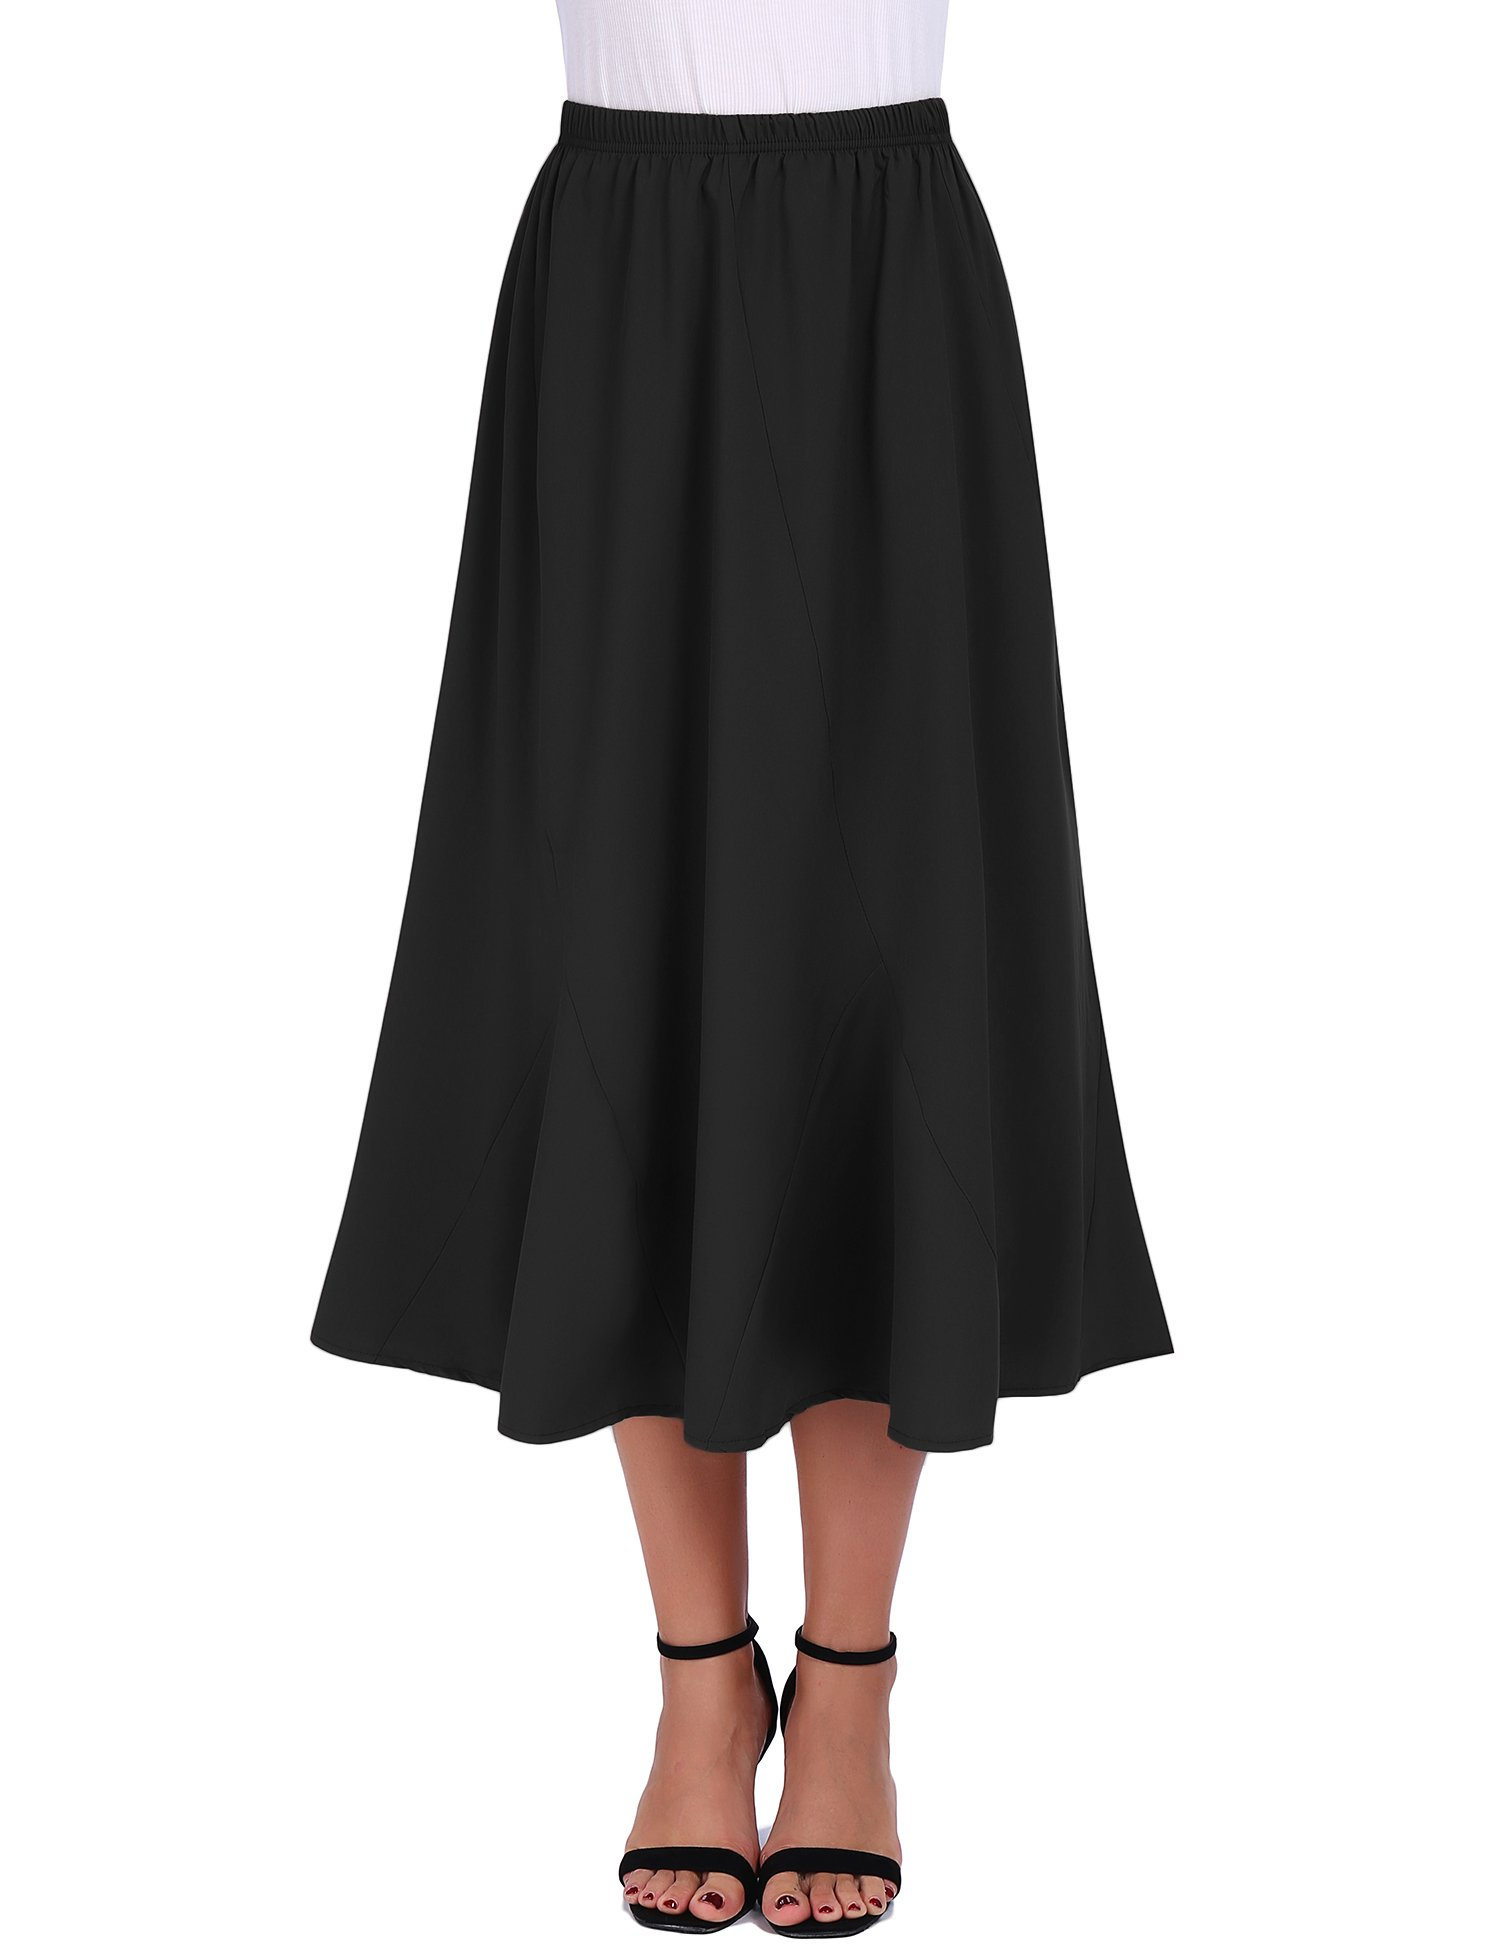 FISOUL Women Vintage Elastic Waist Skirts Casual Ankle Length Flared A-Line Pleated Long Skirts (Black, Small)